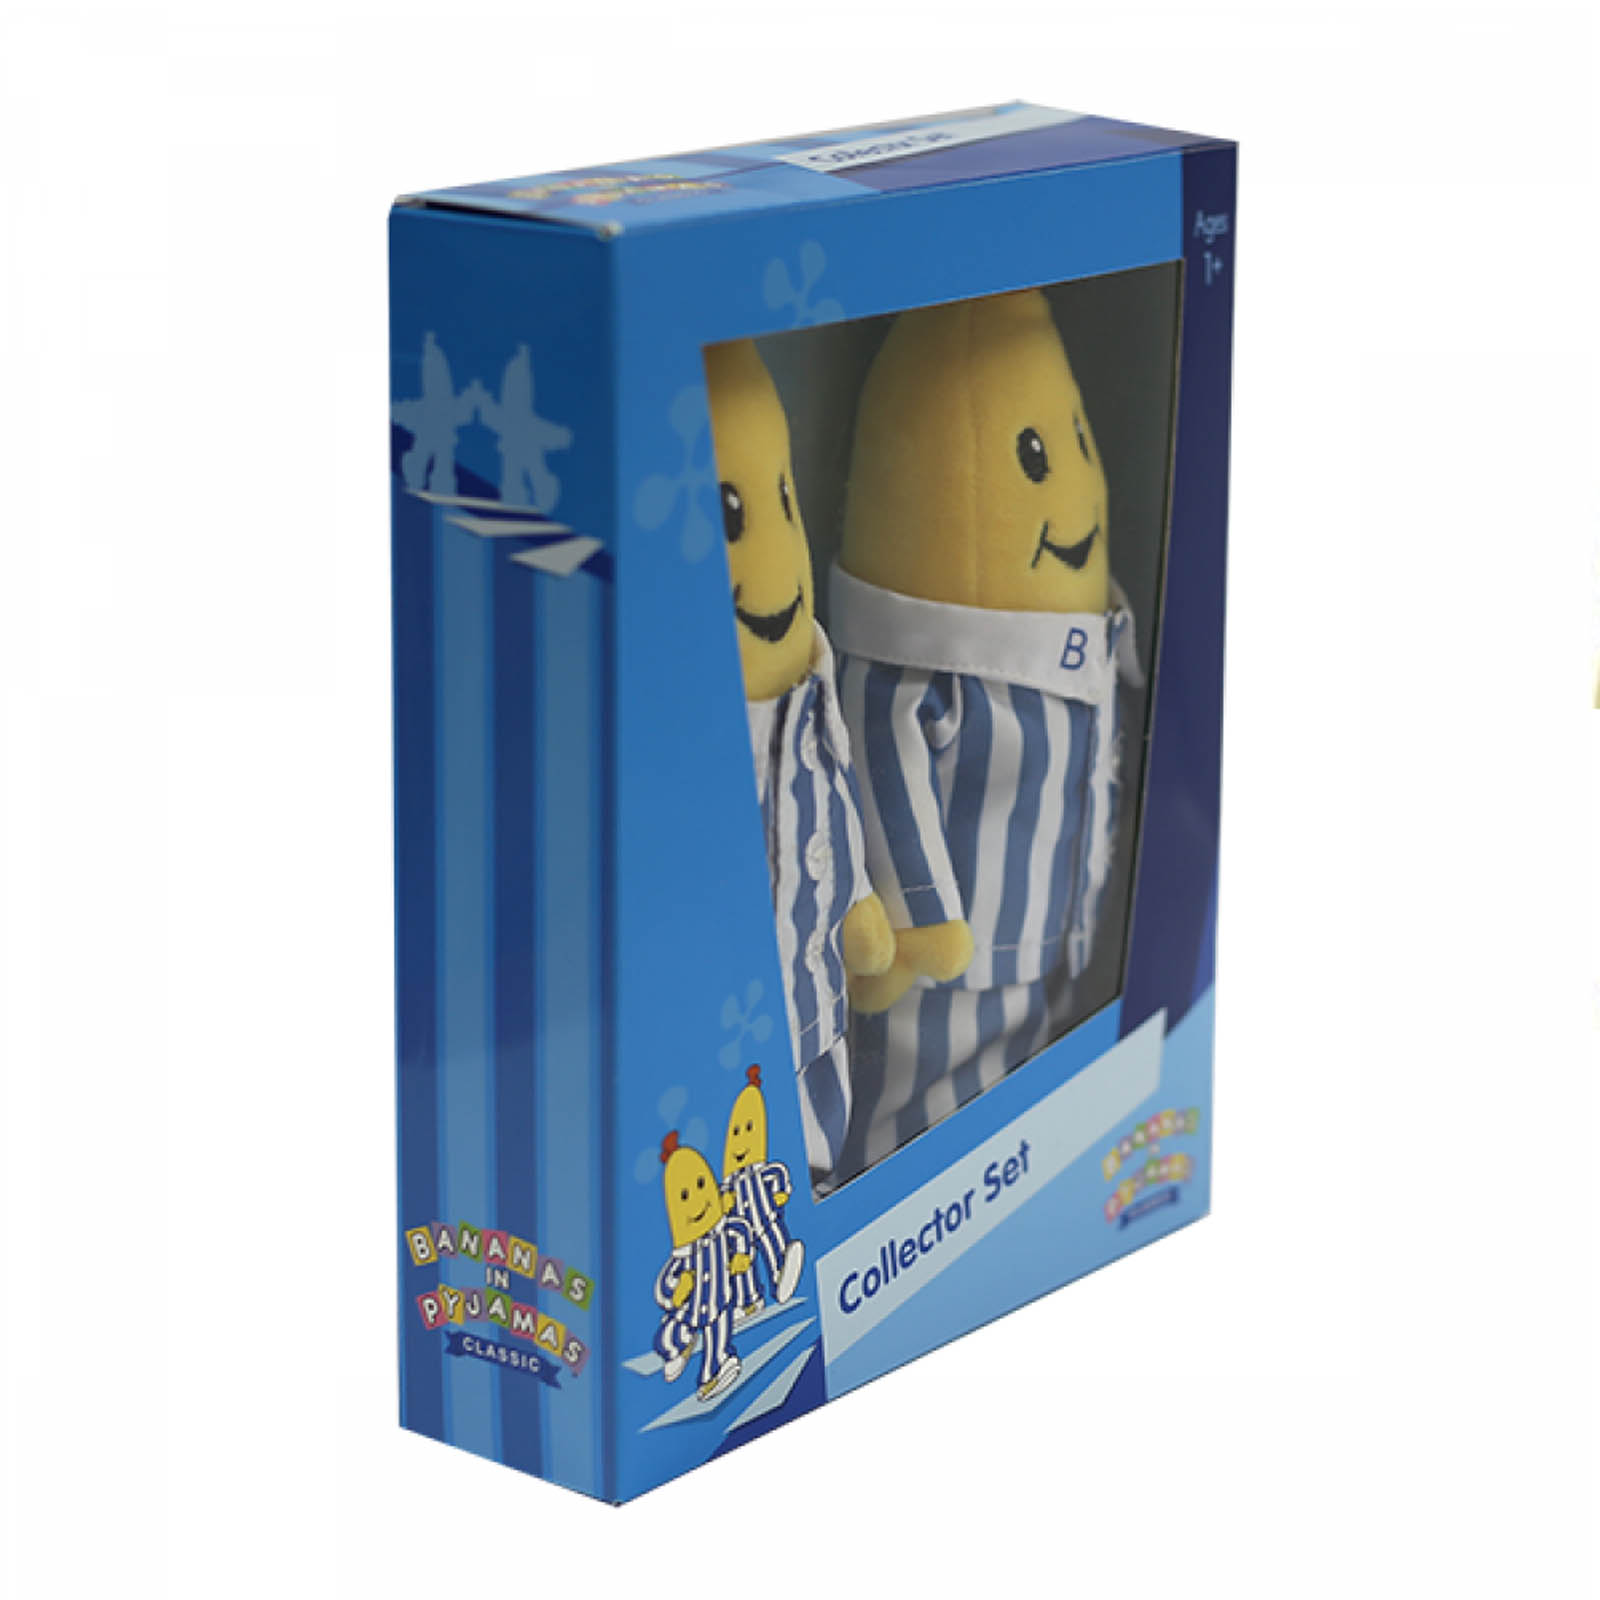 Bananas in Pyjamas Plush Toy Collector Set Boxed